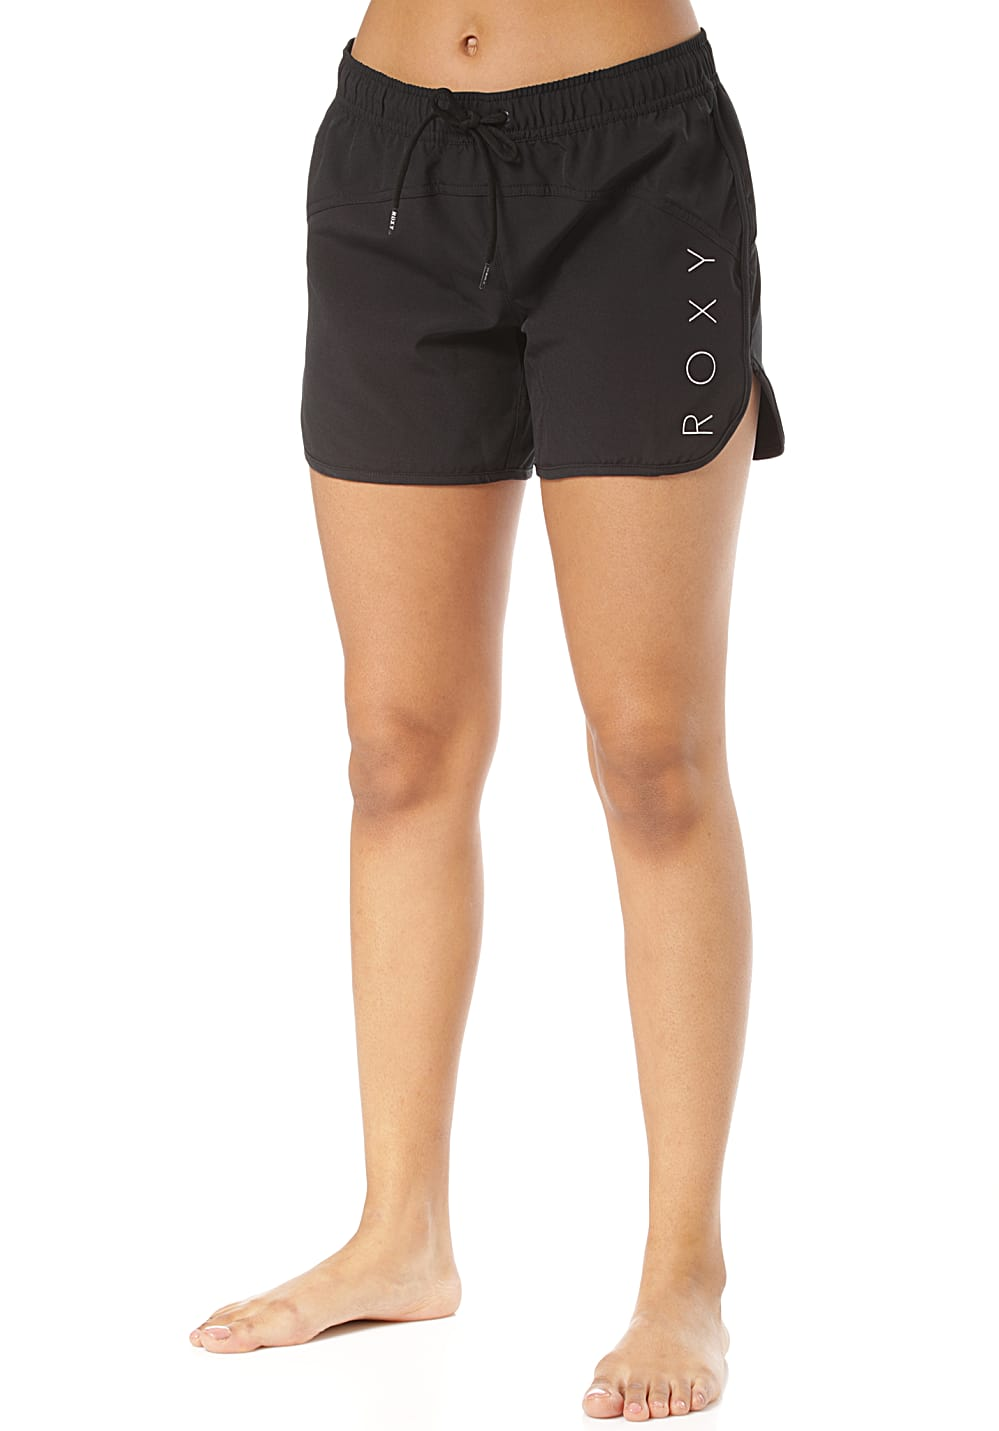 Bademode - Roxy Chill Love 5 Boardshorts für Damen Schwarz  - Onlineshop Planet Sports